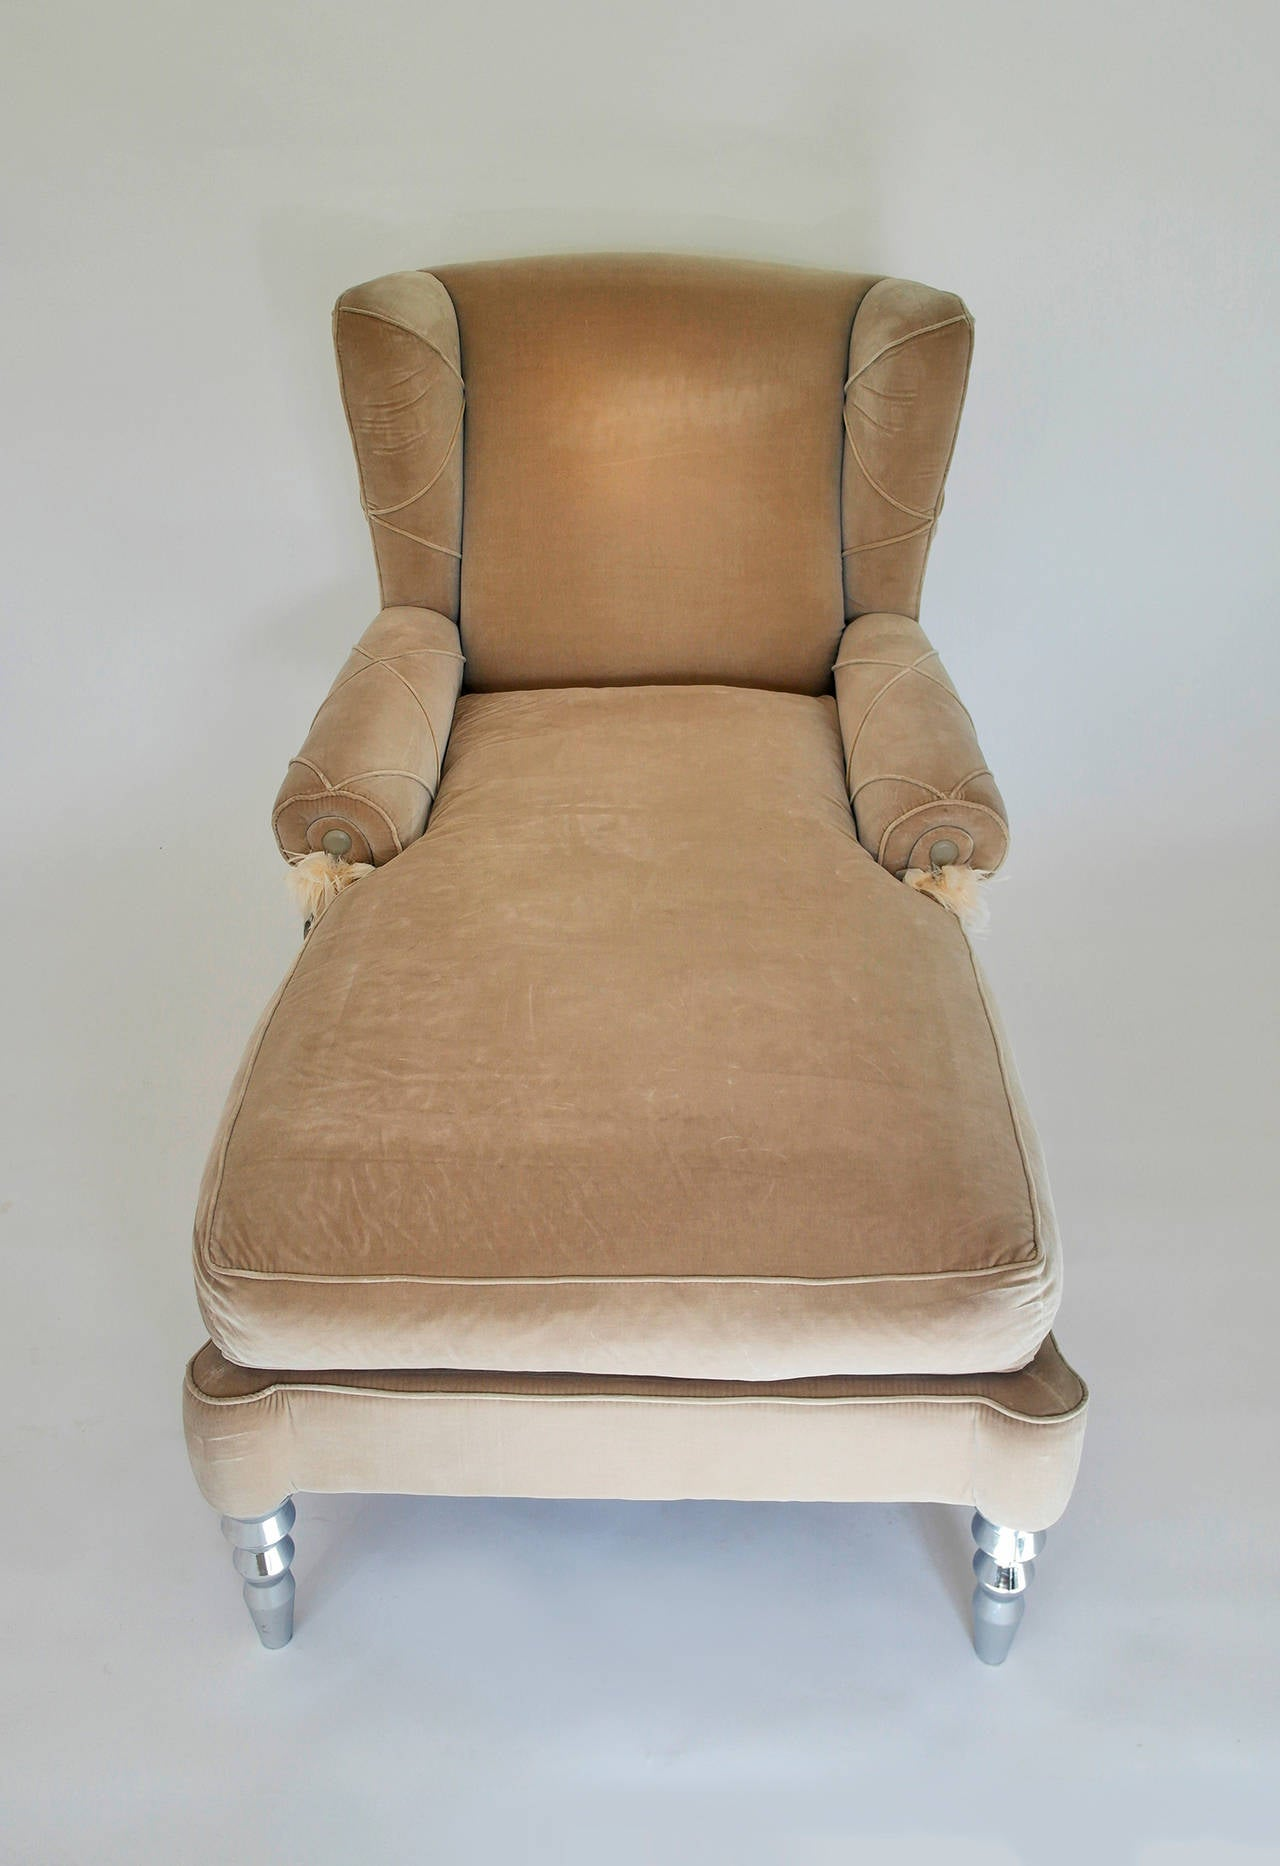 Pair of roberto cavalli chaise day bed wingback chairs for for Chaise furniture sale